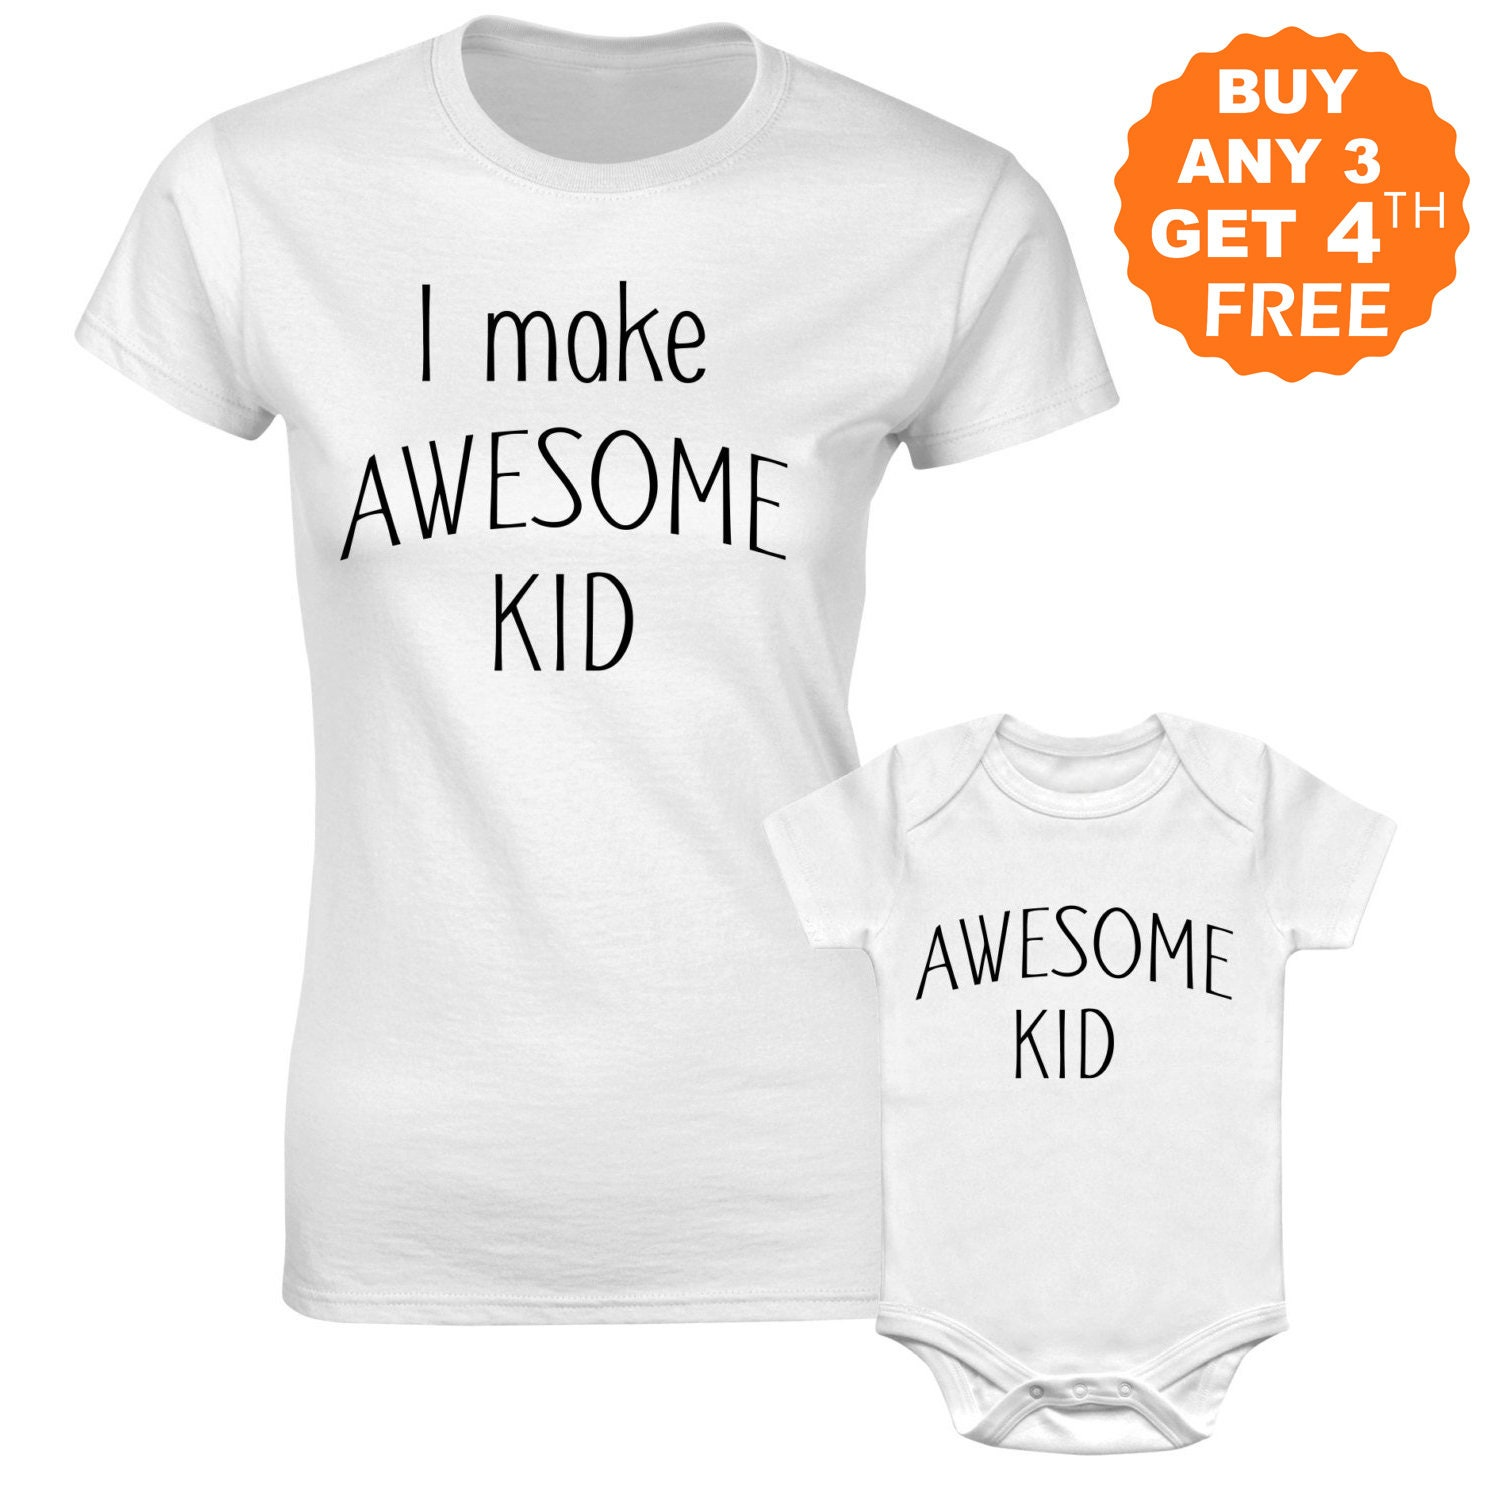 2a7ac2042e Awesome Mommy and Me Shirts Matching Family Outfit Funny | Etsy